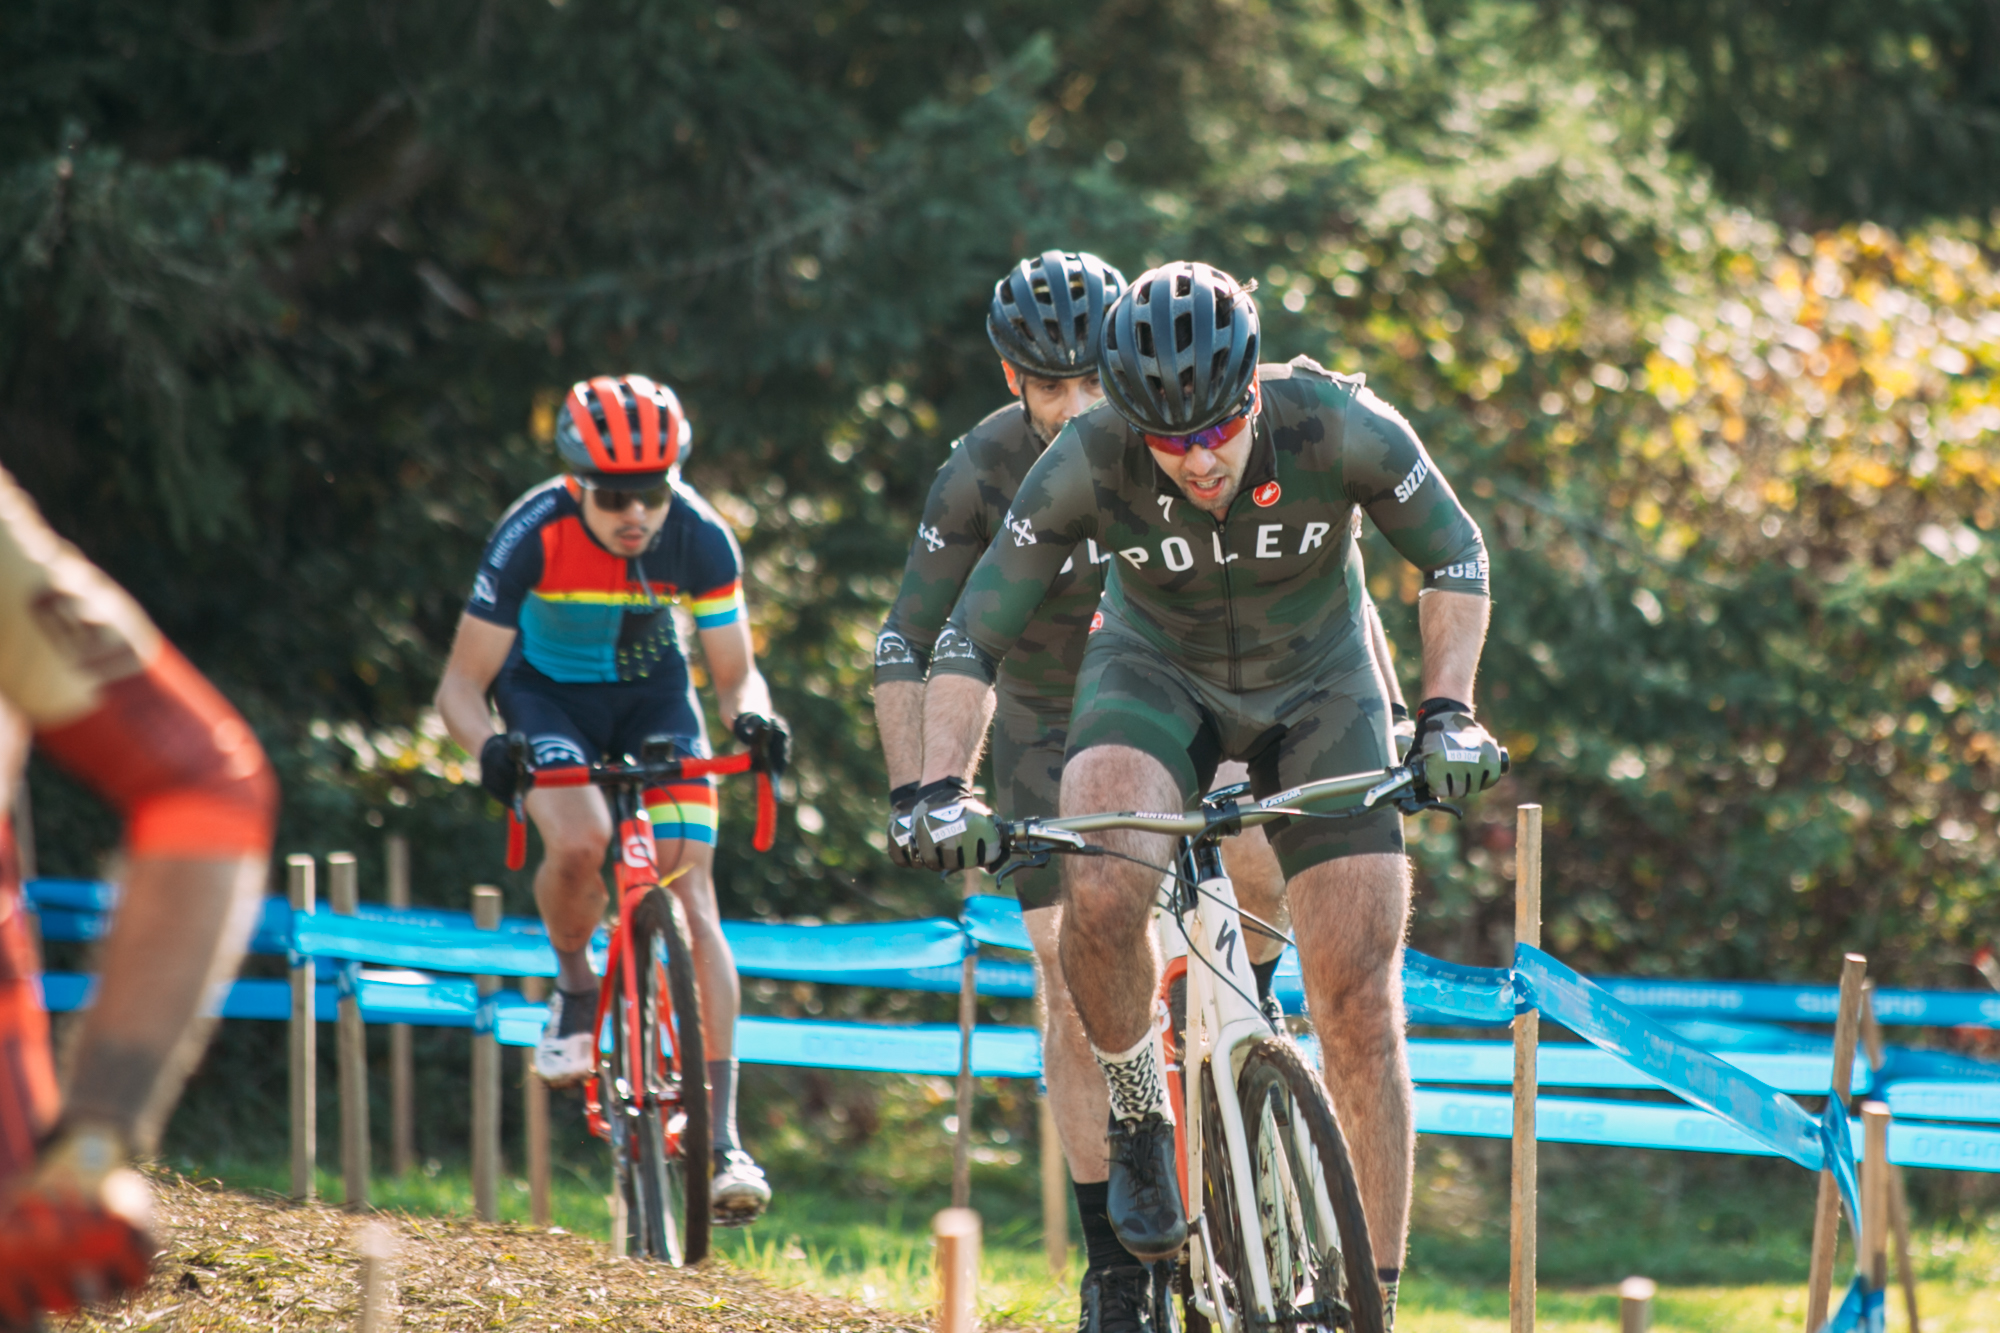 Cyclocross18_CCCX_RainierHS-98-mettlecycling.jpg